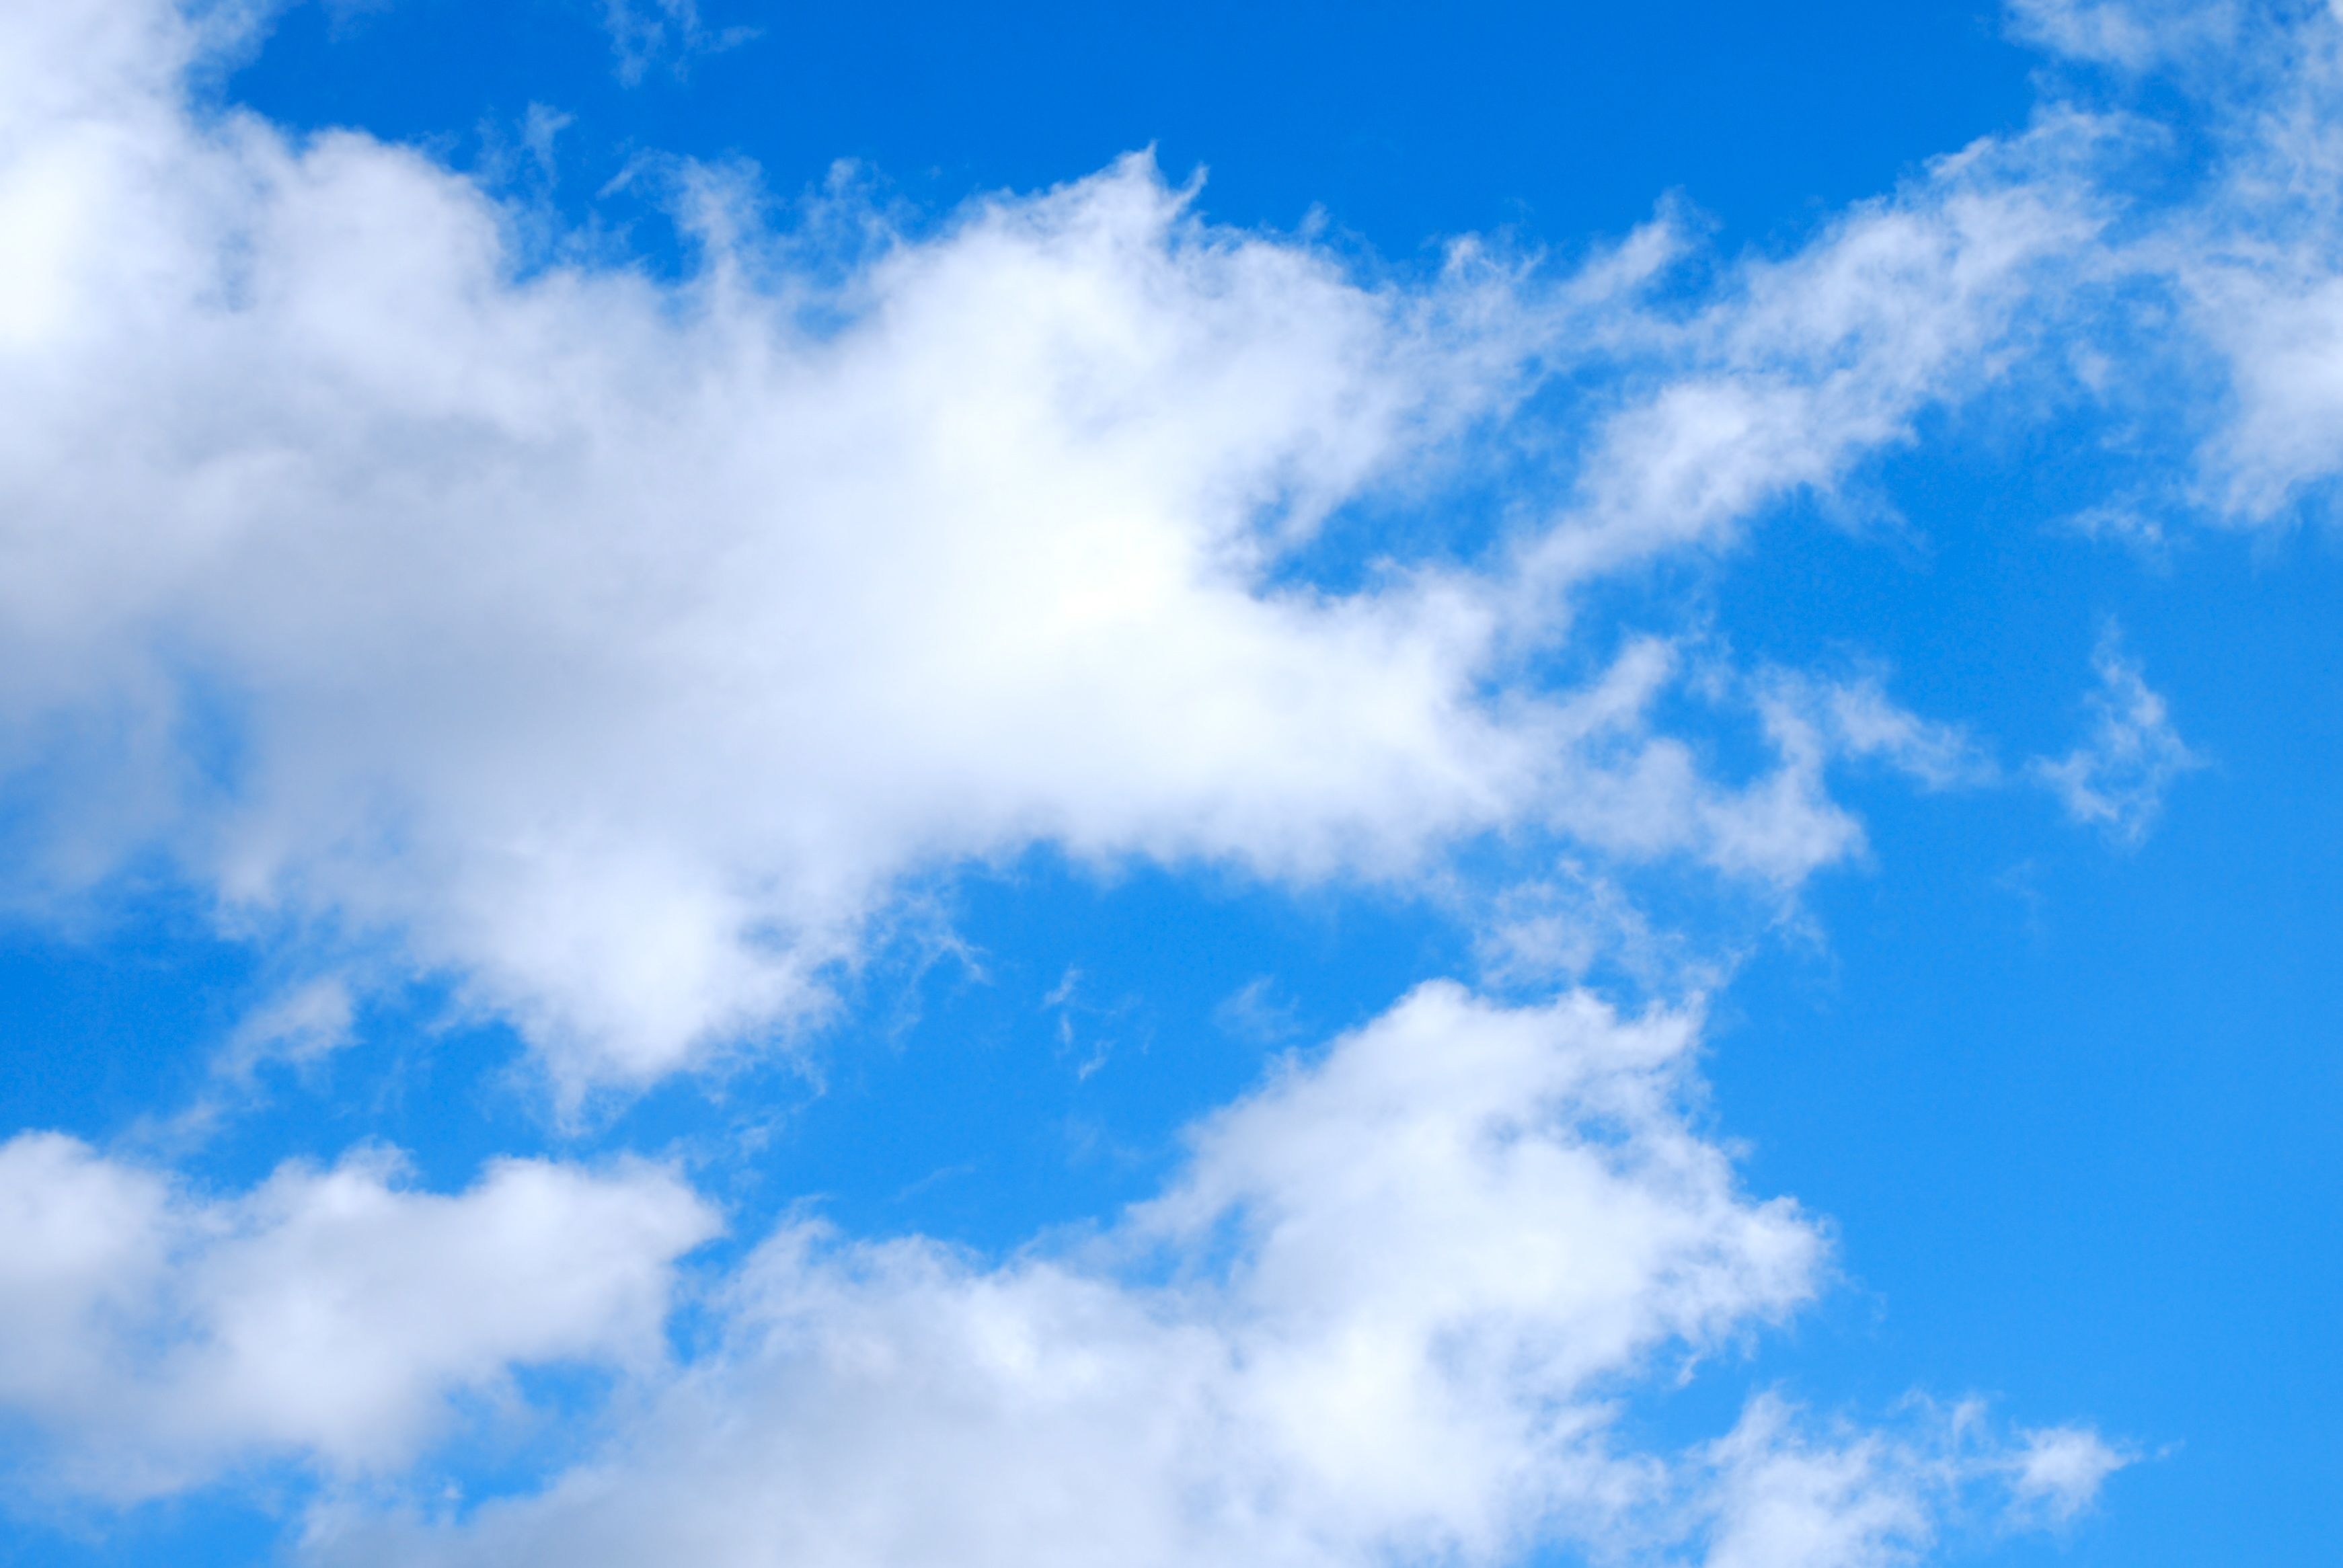 sky the meaning of the dream in which you see sky